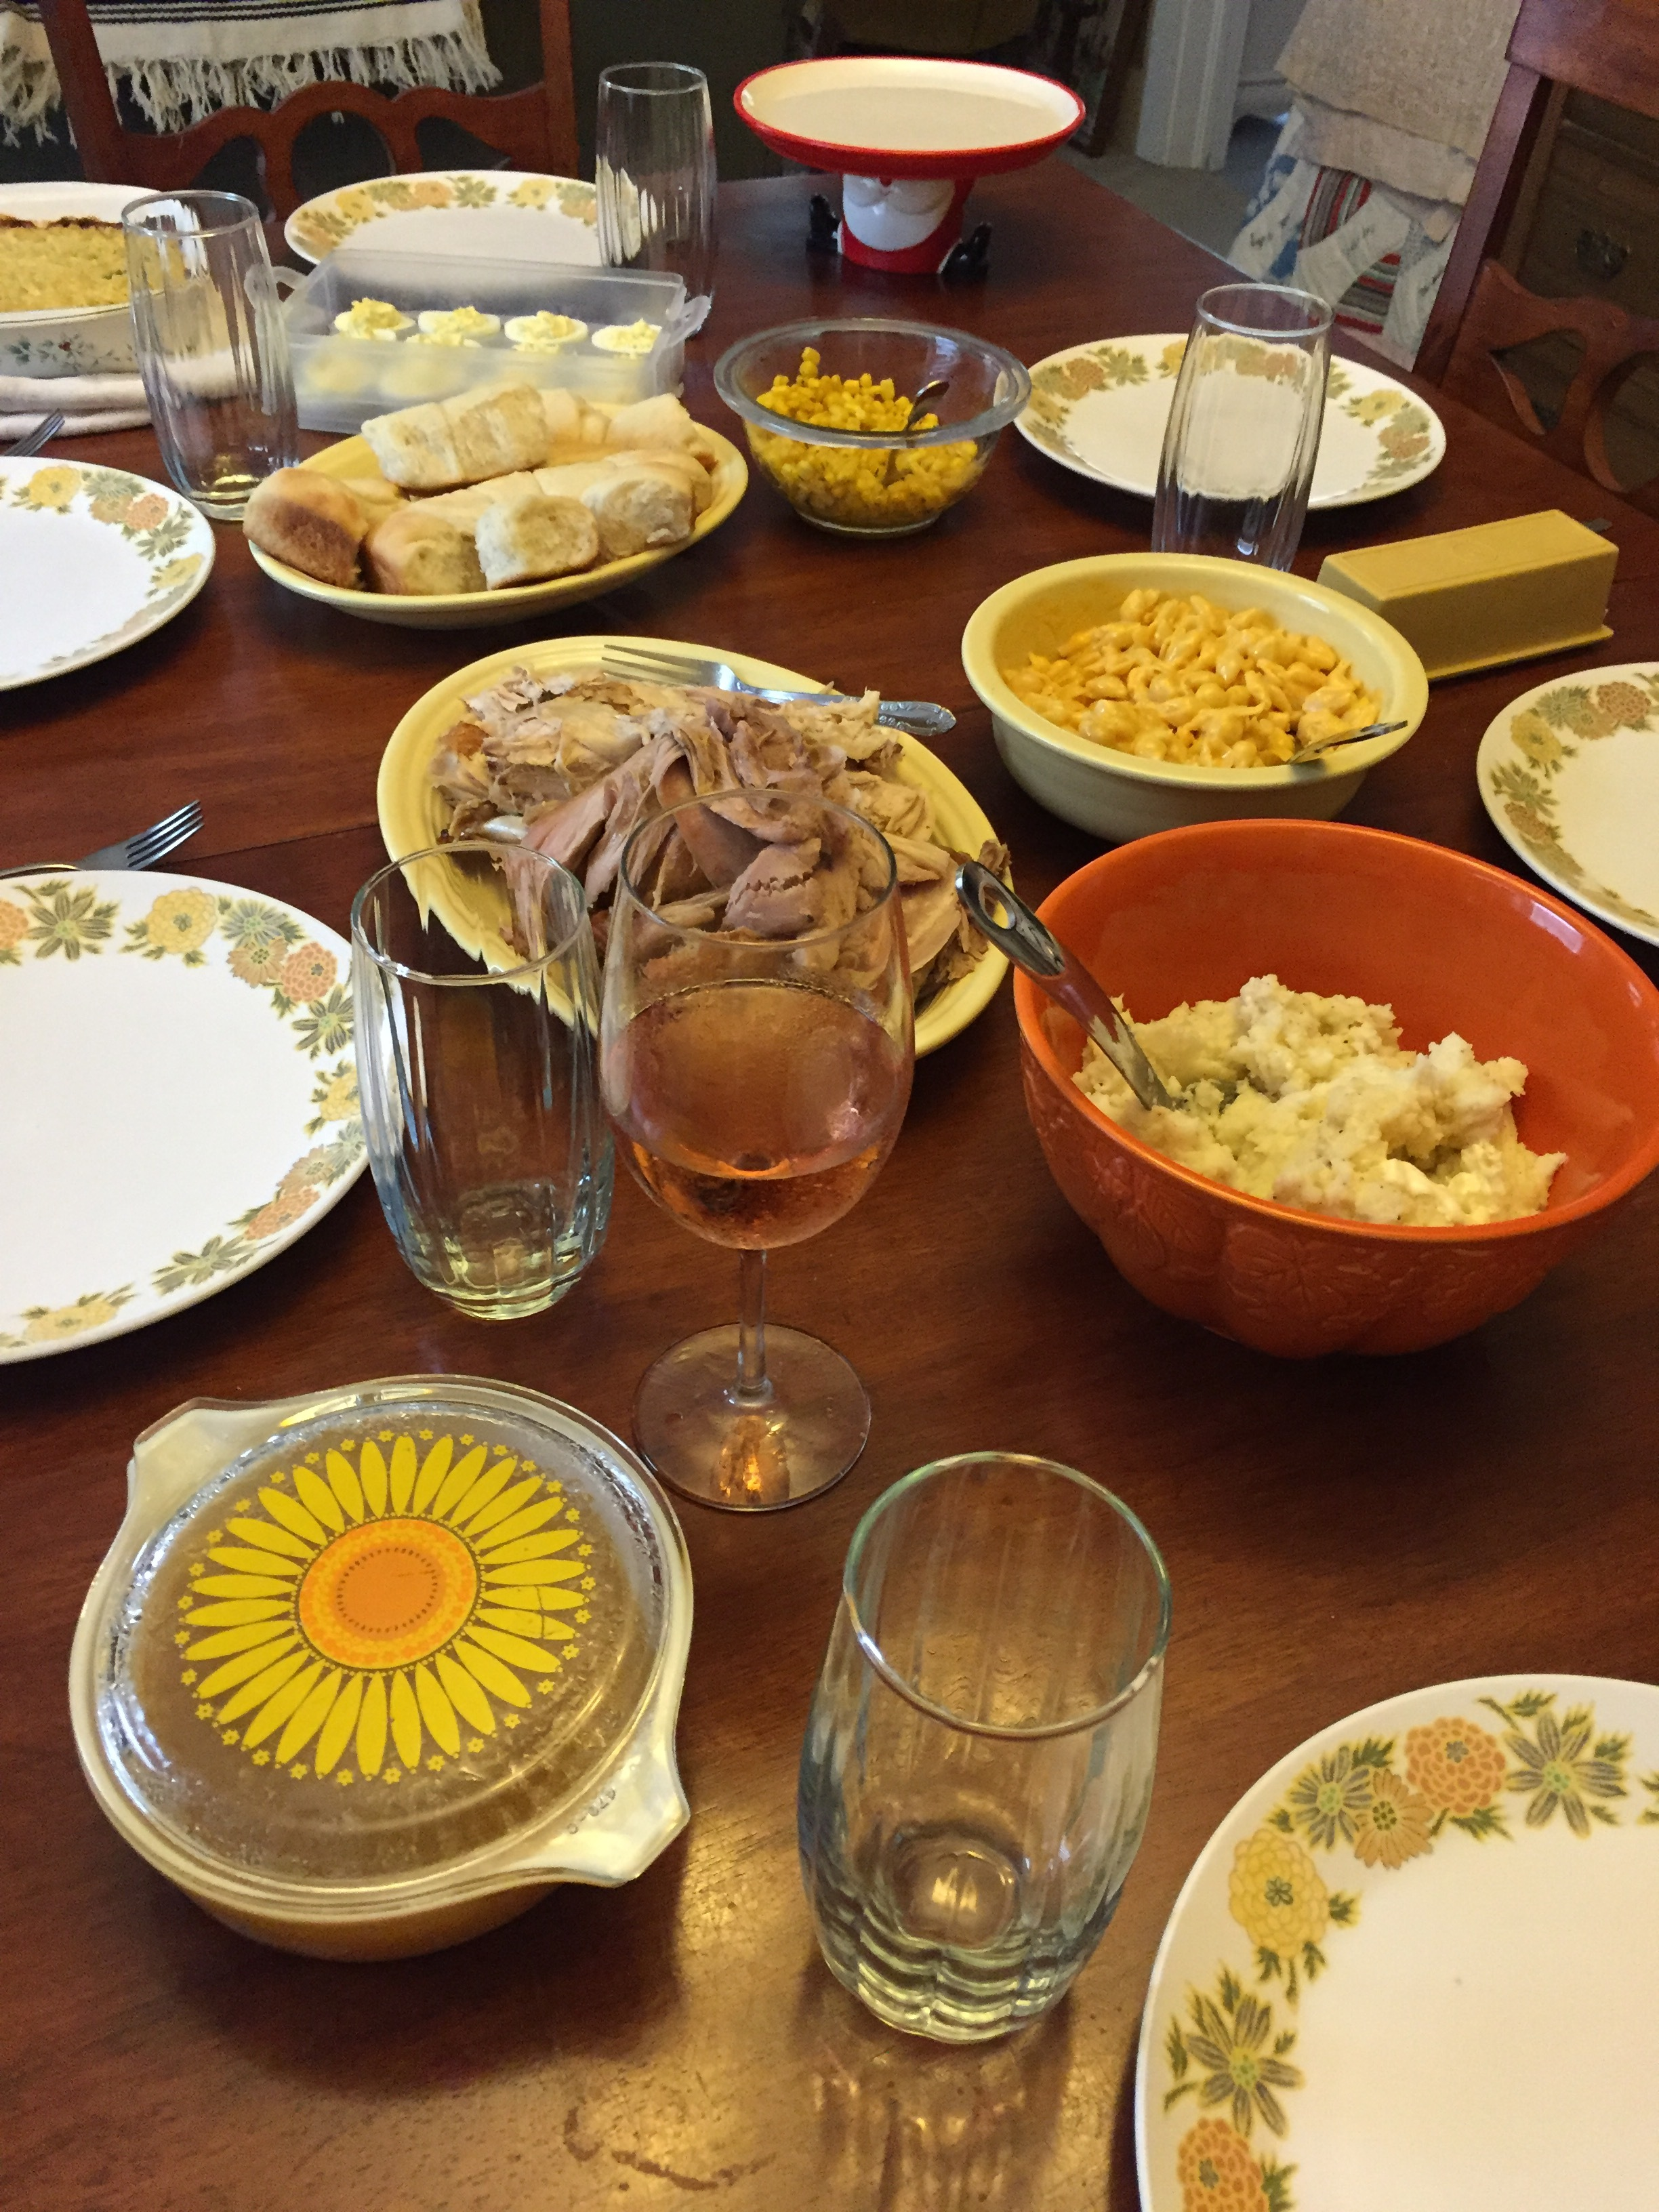 ThanksgivingTable.jpg